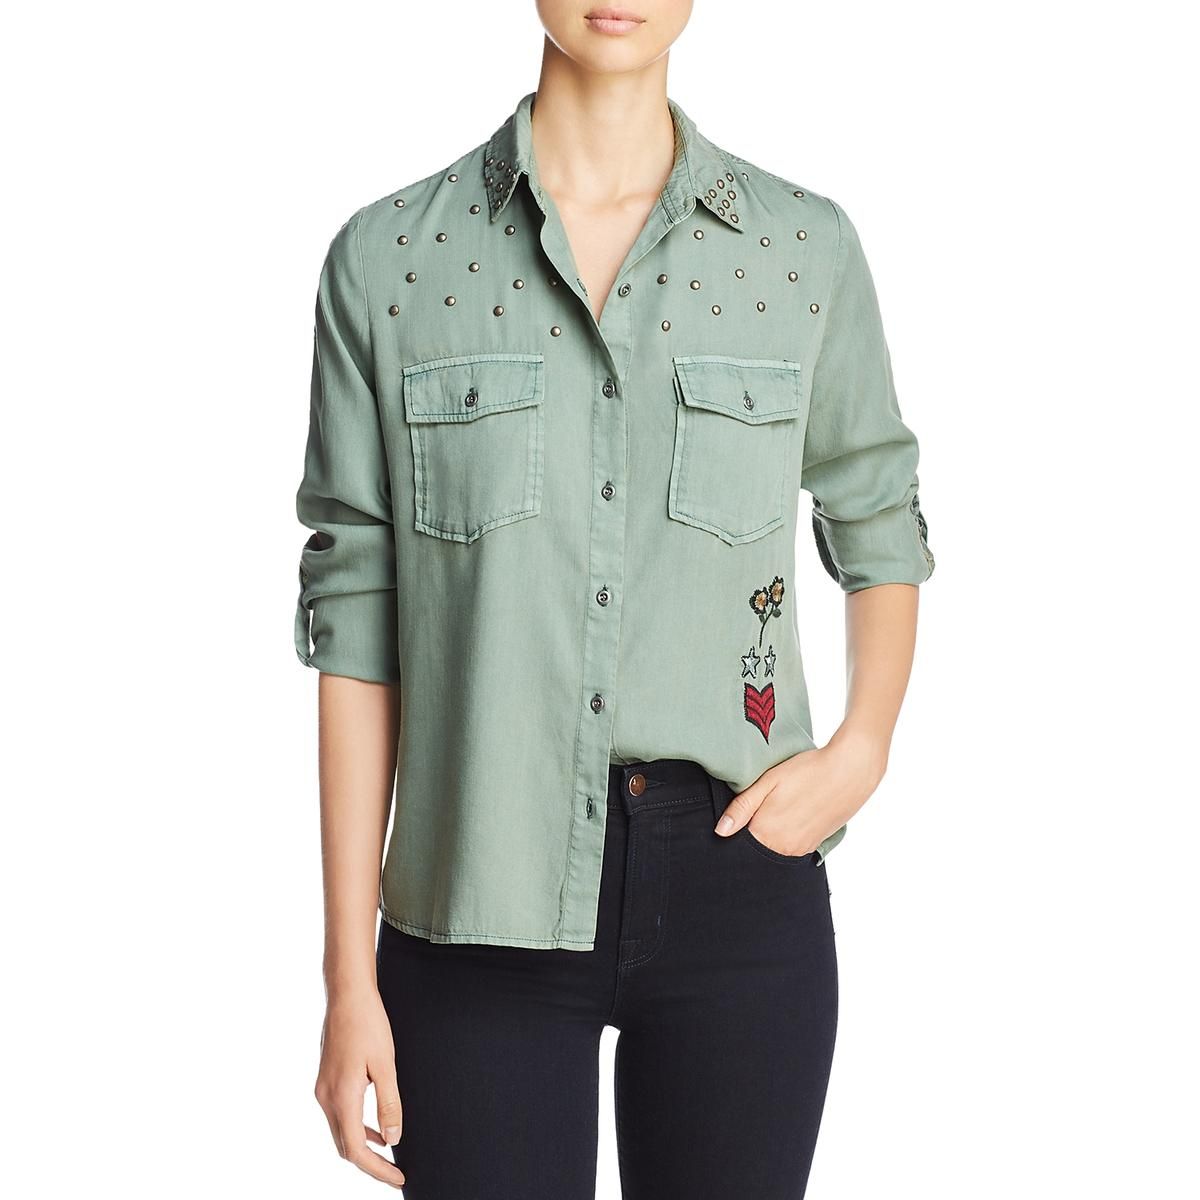 Billy T Womens Embroidred Long Sleeves Blouse